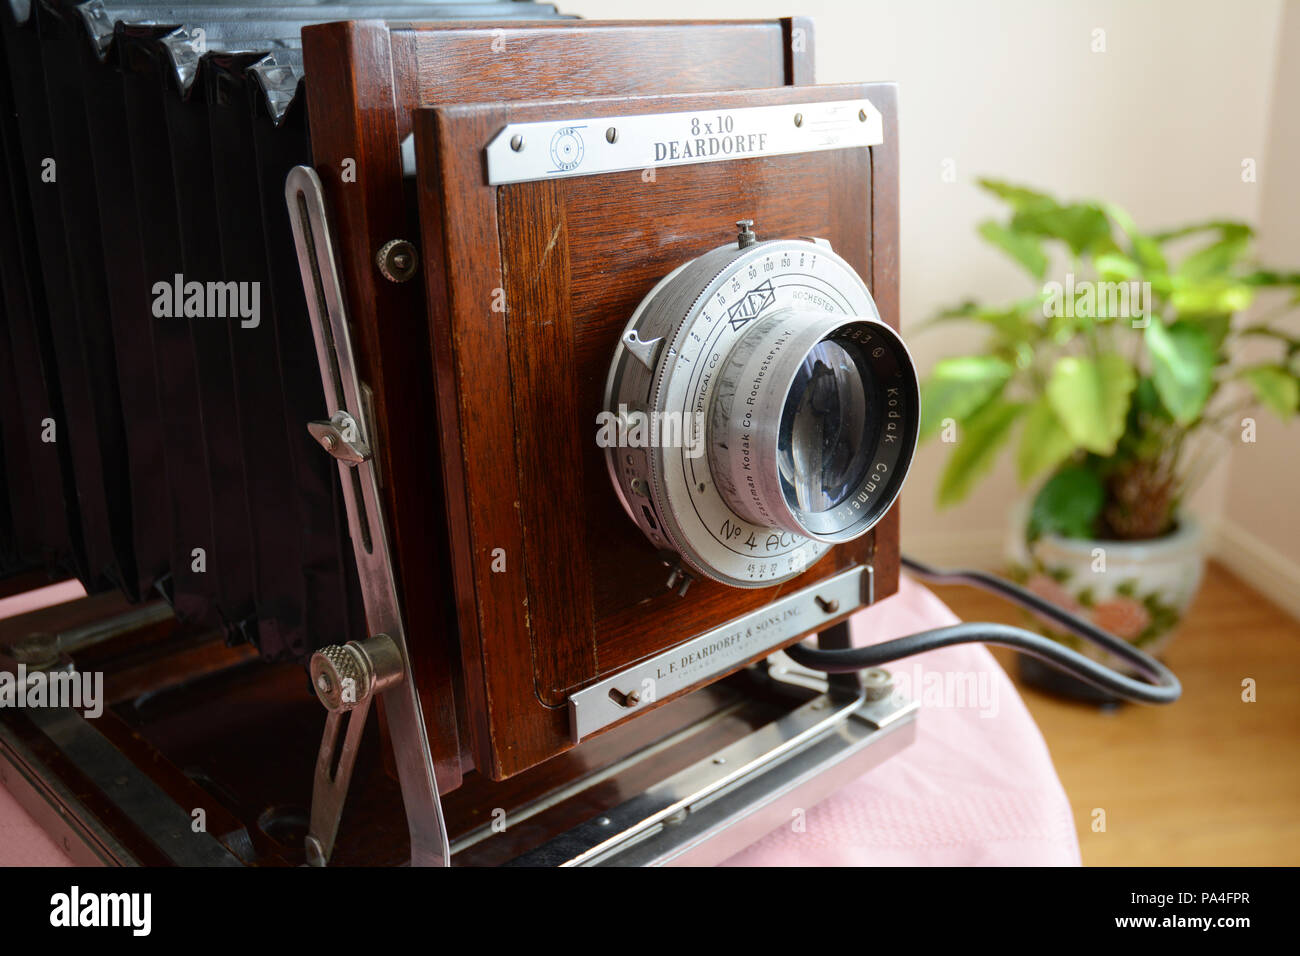 A foldable large format Deardorff antique 8x10 analog field camera and Kodak lens built in the 1950s. - Stock Image